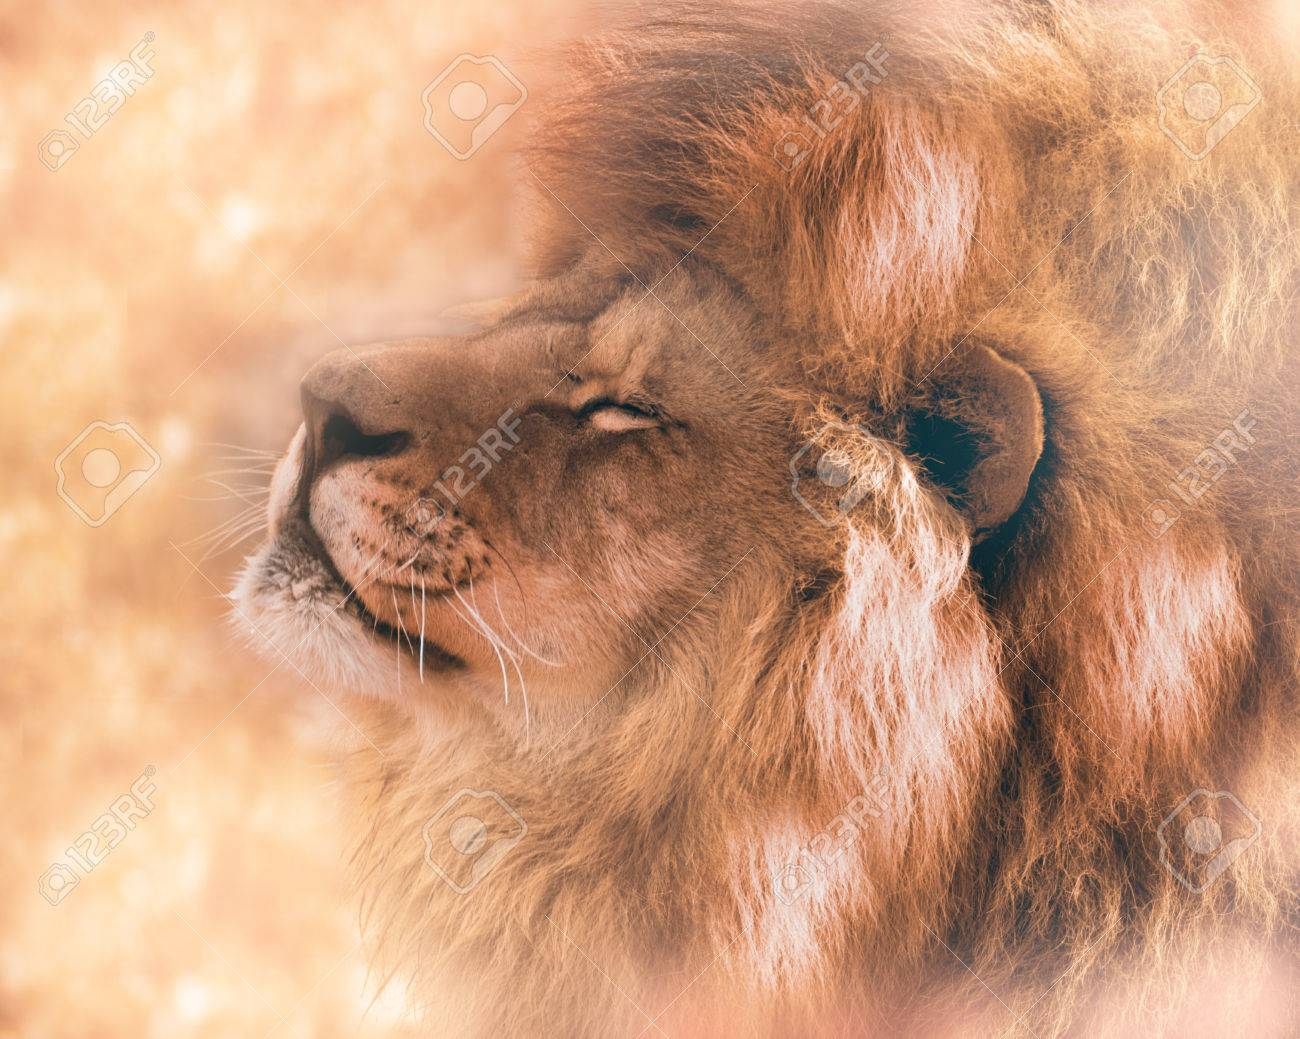 Beautiful lion in dream  Big dominant animal from Africa